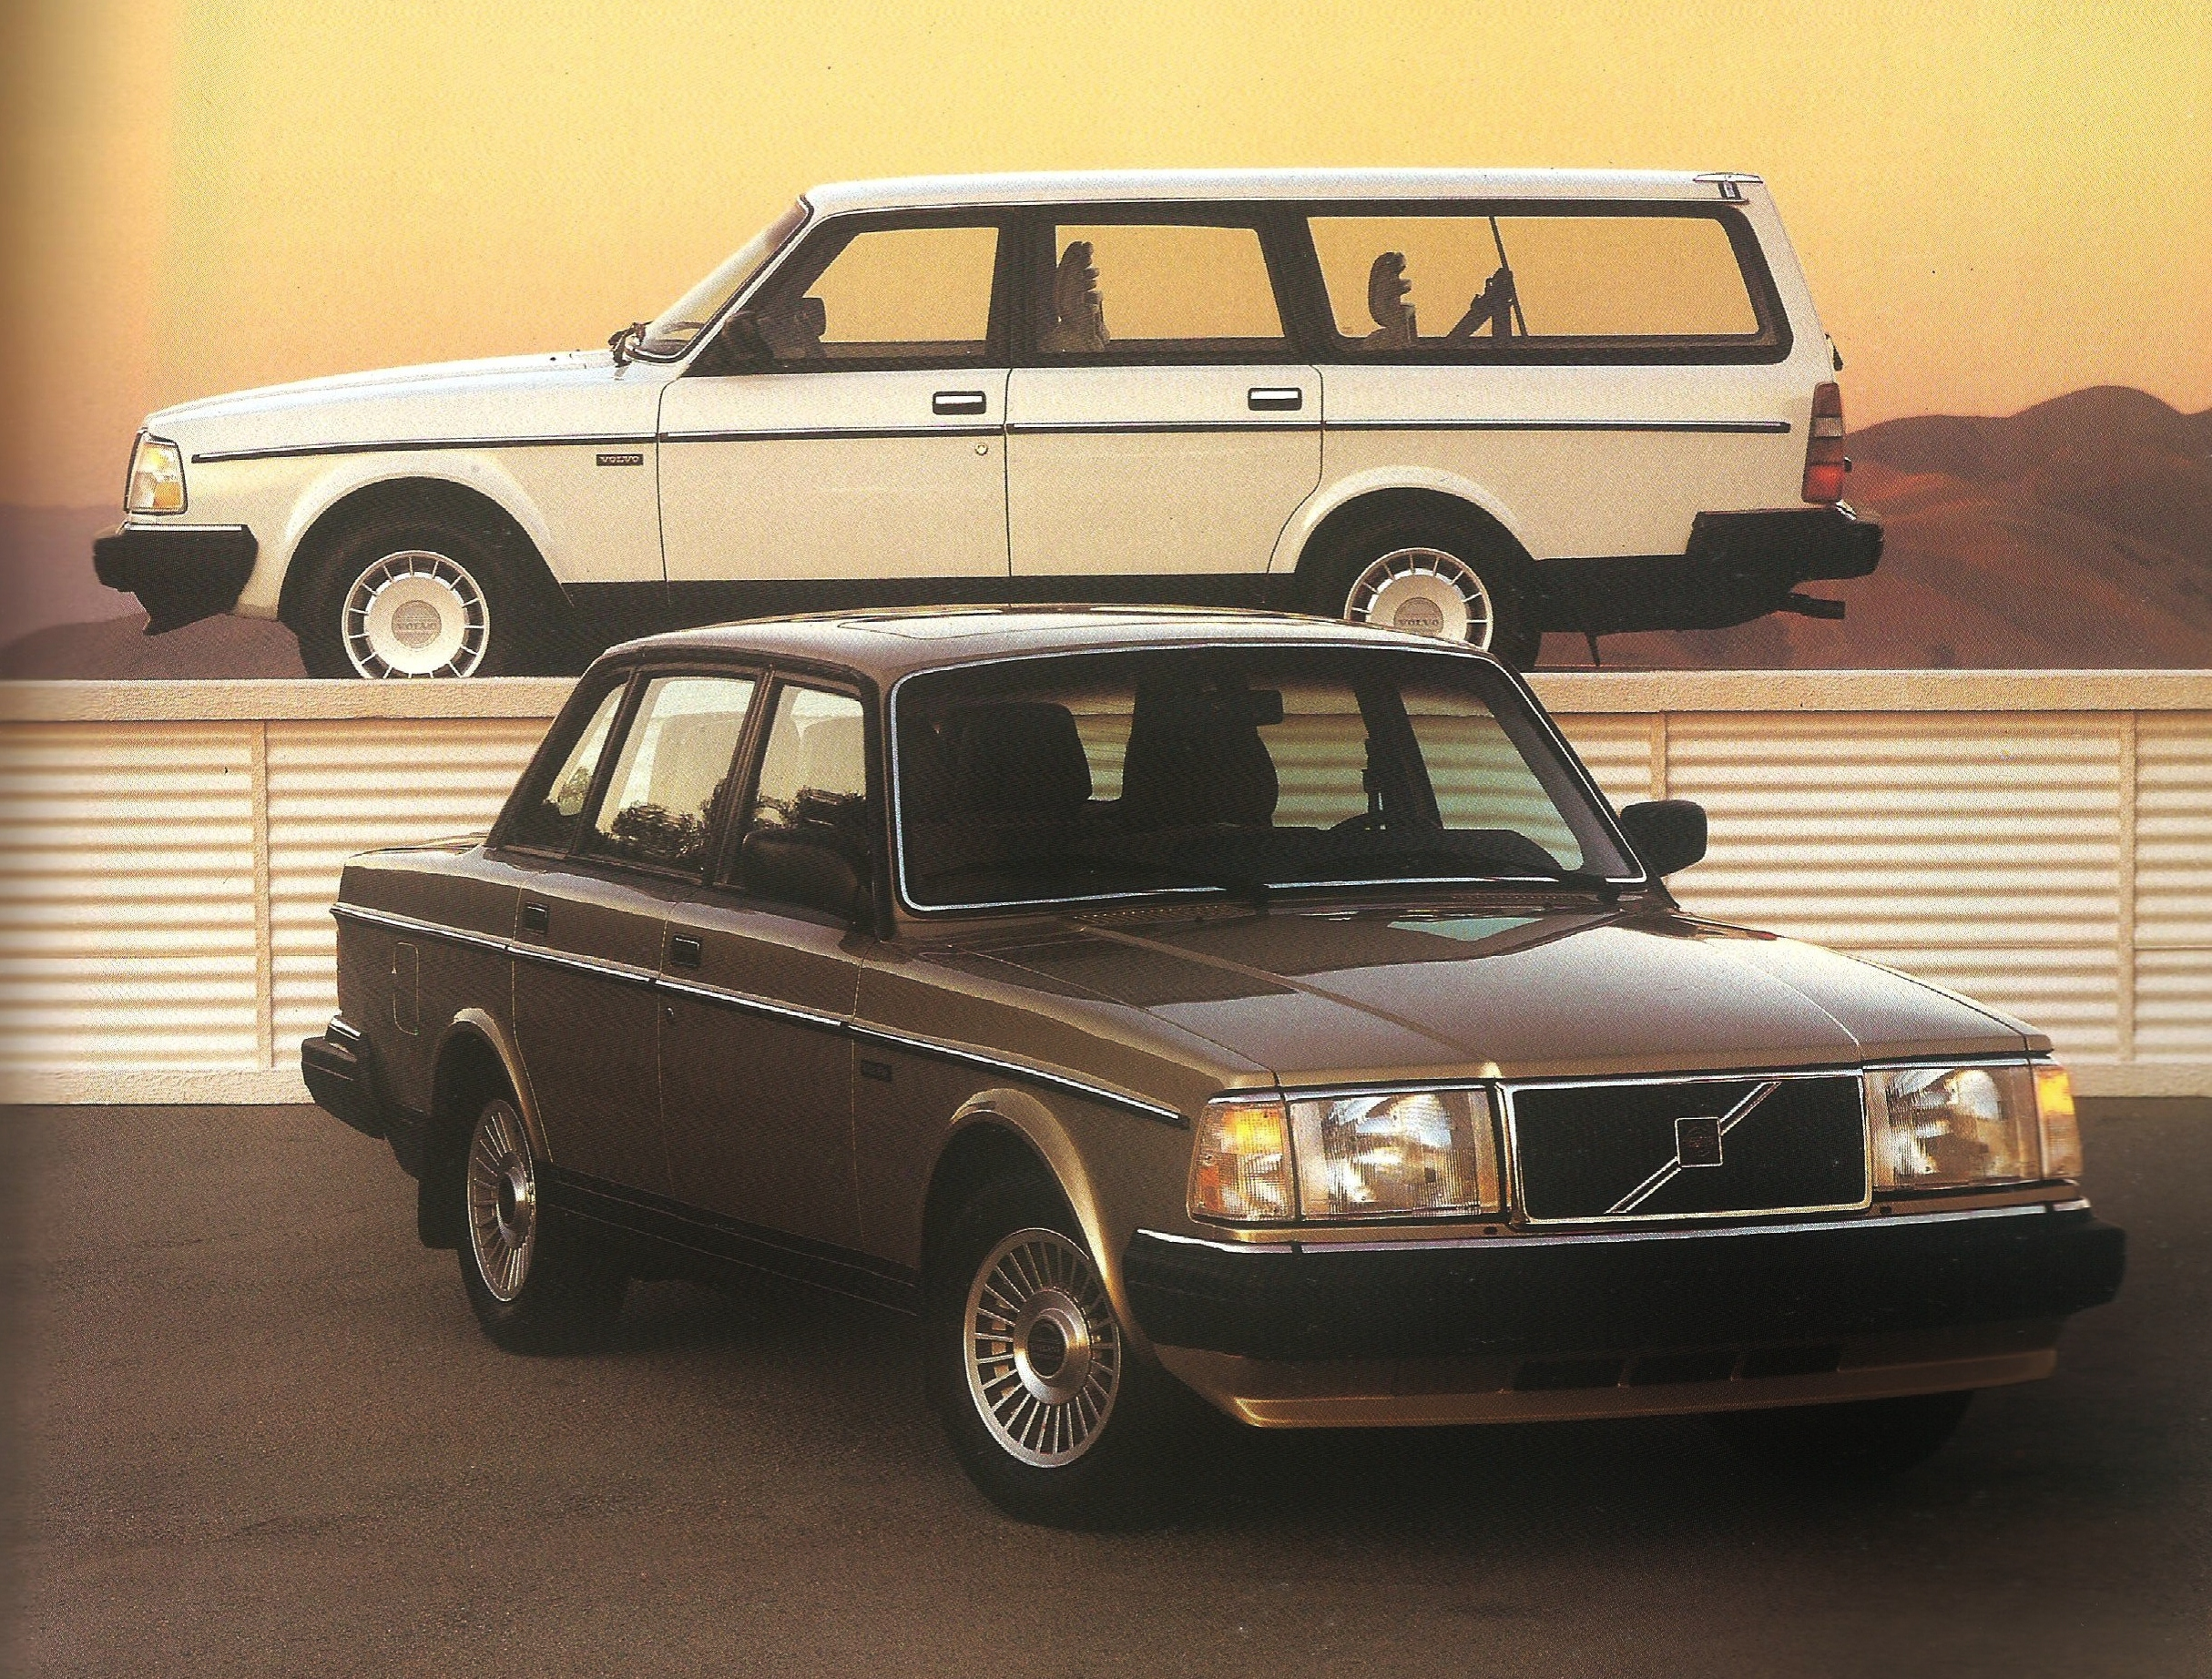 Cars Of A Lifetime: 1987 Volvo 245 – Practically Sensible and Serenely Safe